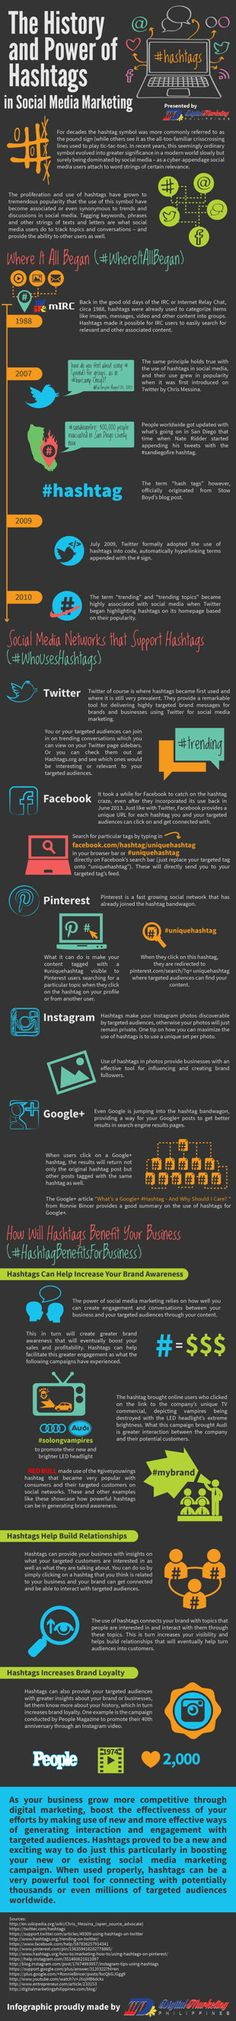 The History and Power of Hashtags in Social Media Marketing (Infographic)